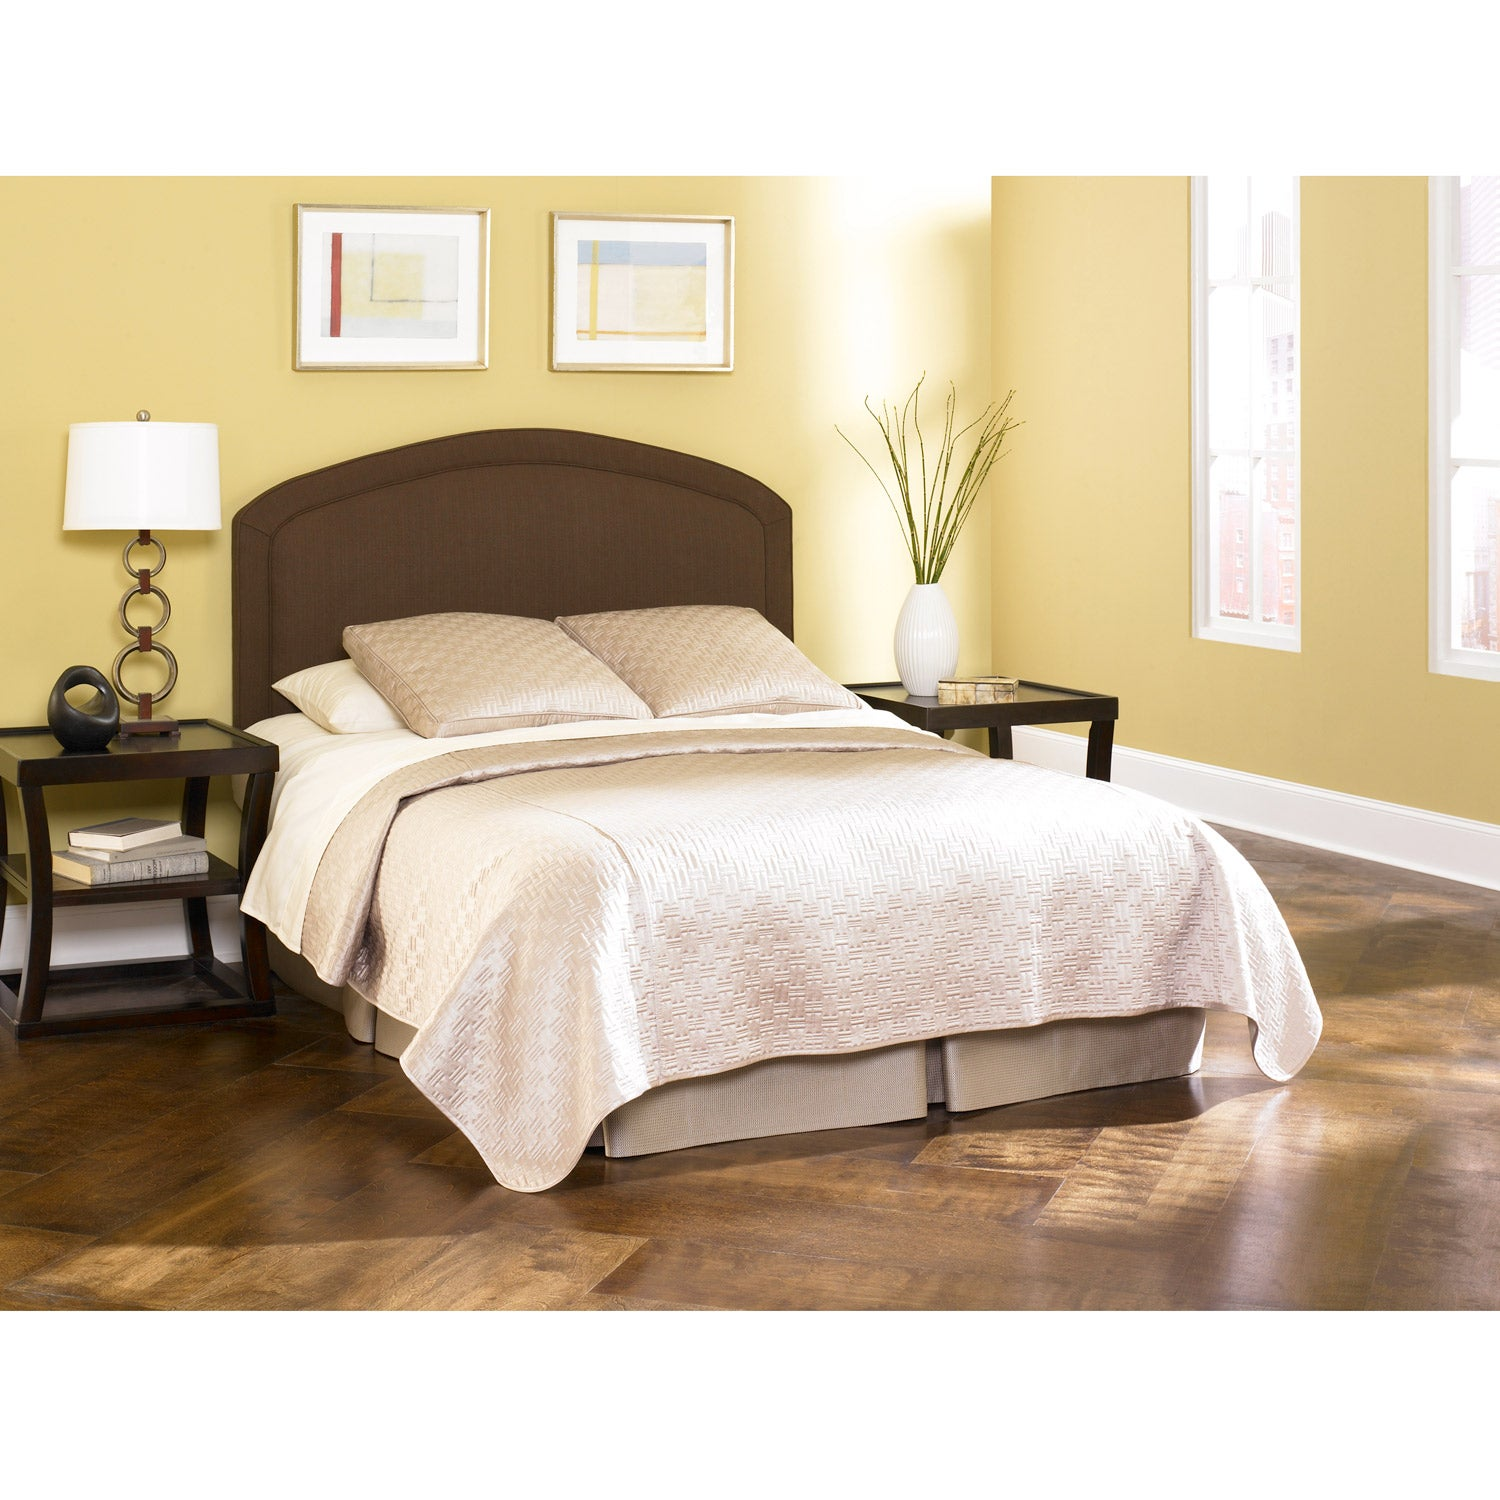 Fashion Bed Cherbourg Deep Chocolate Twin-size Upholstered Headboard